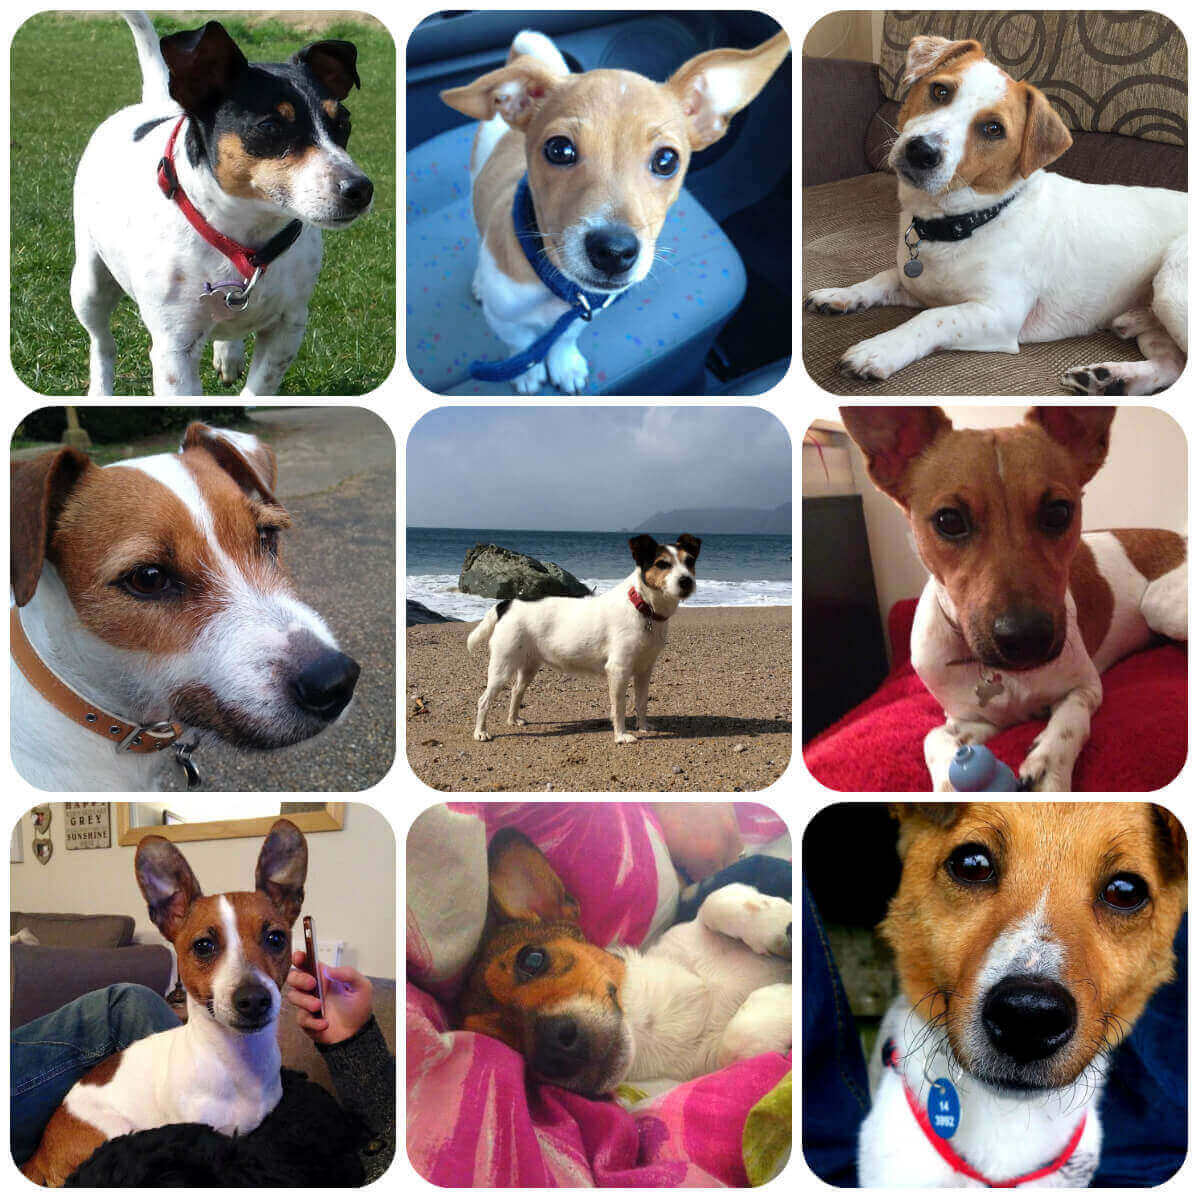 Jack Russell collage, part of BorrowMyDoggy's guide to dog breeds.